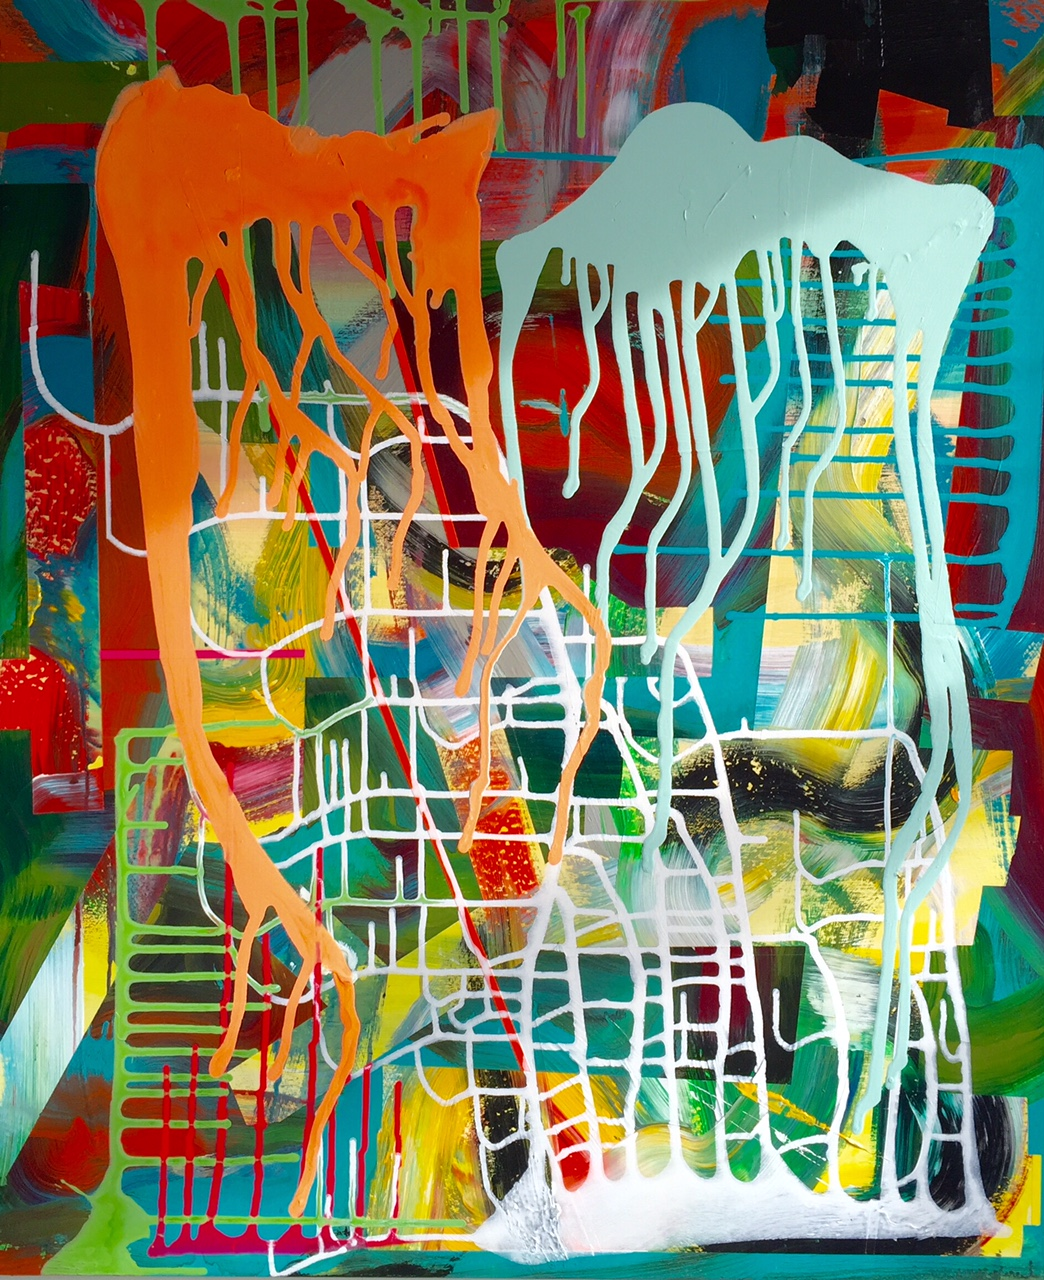 Abstract_acrylic and spray-paint on panel_24 x 30 inches_2016_1